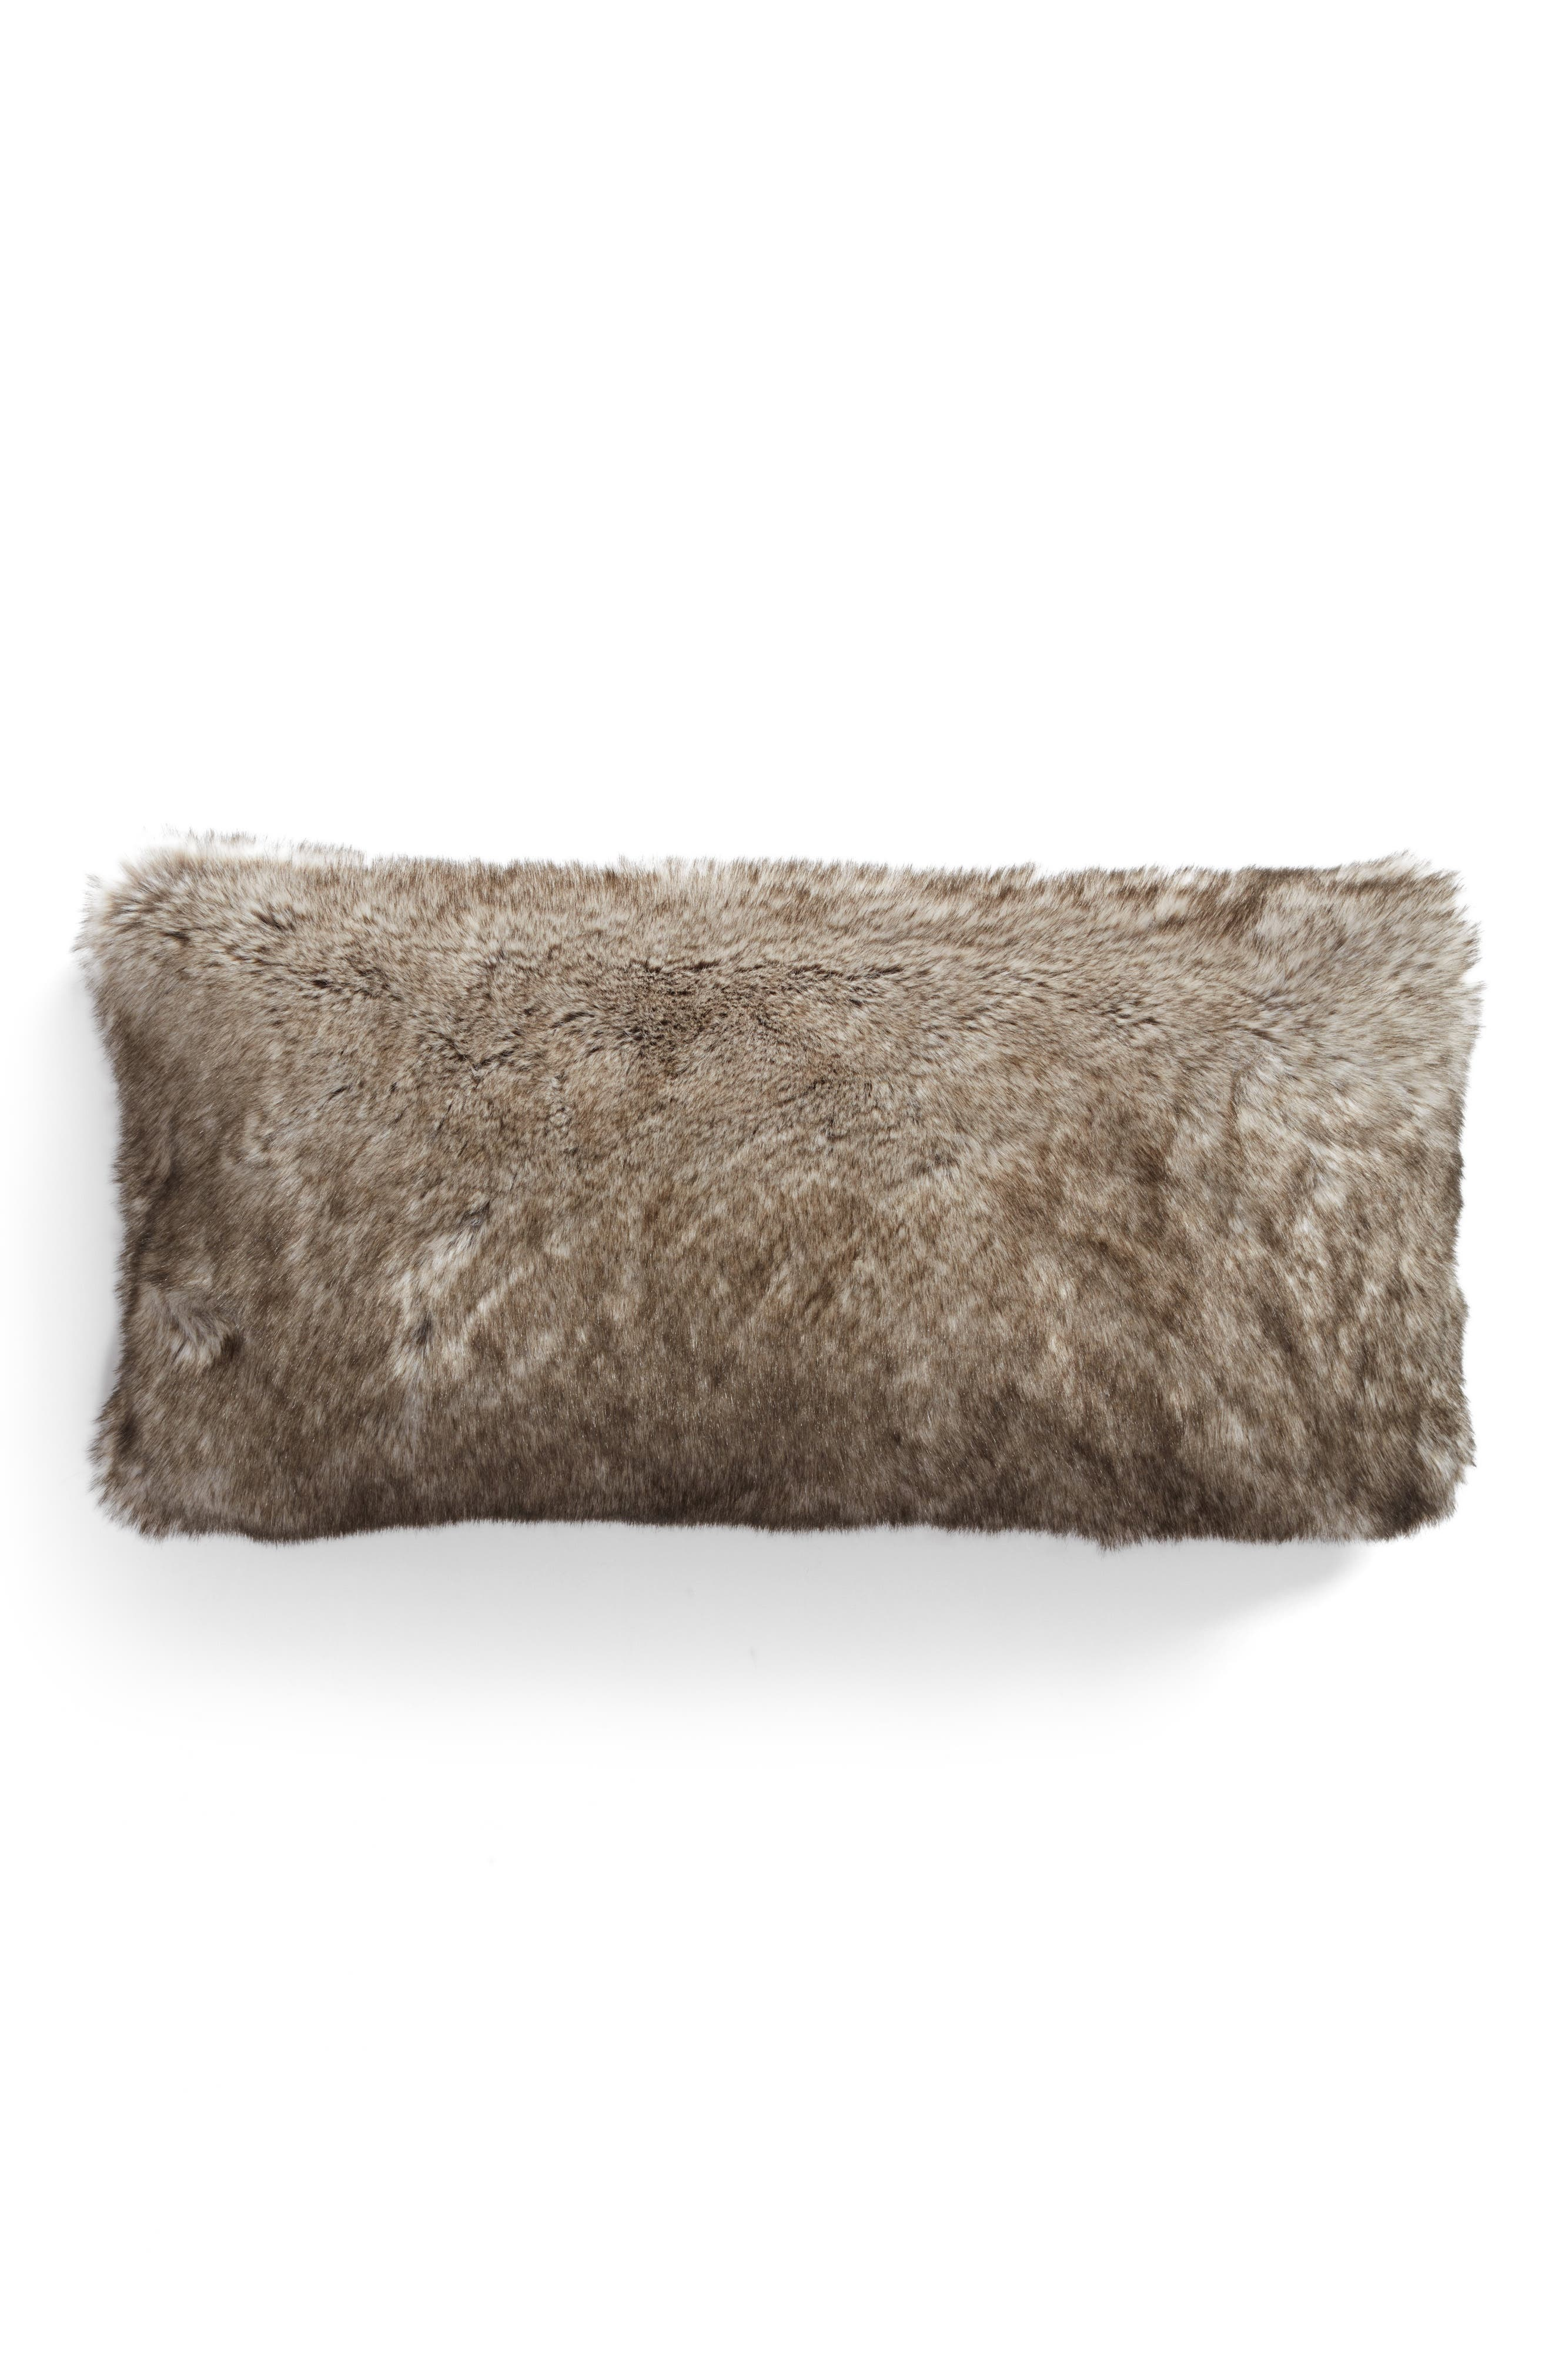 Cuddle Up Faux Fur Accent Pillow,                             Main thumbnail 1, color,                             New Natural Tipped